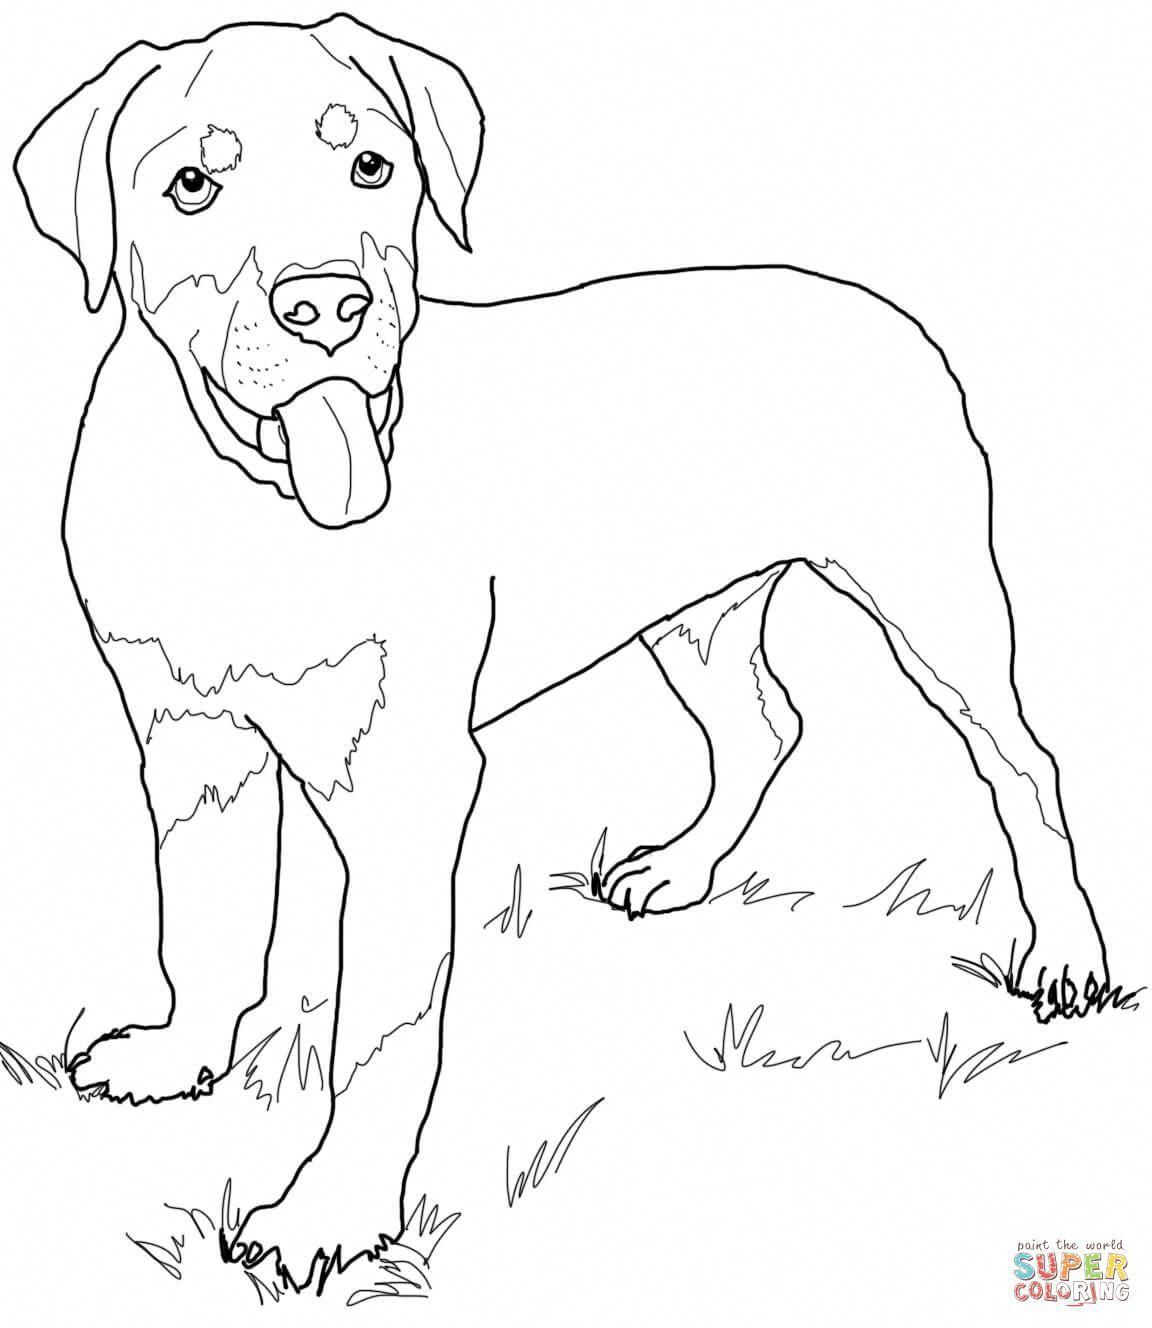 Tumblr In 2021 Puppy Coloring Pages Dog Coloring Page Rottweiler Puppies [ 1328 x 1152 Pixel ]